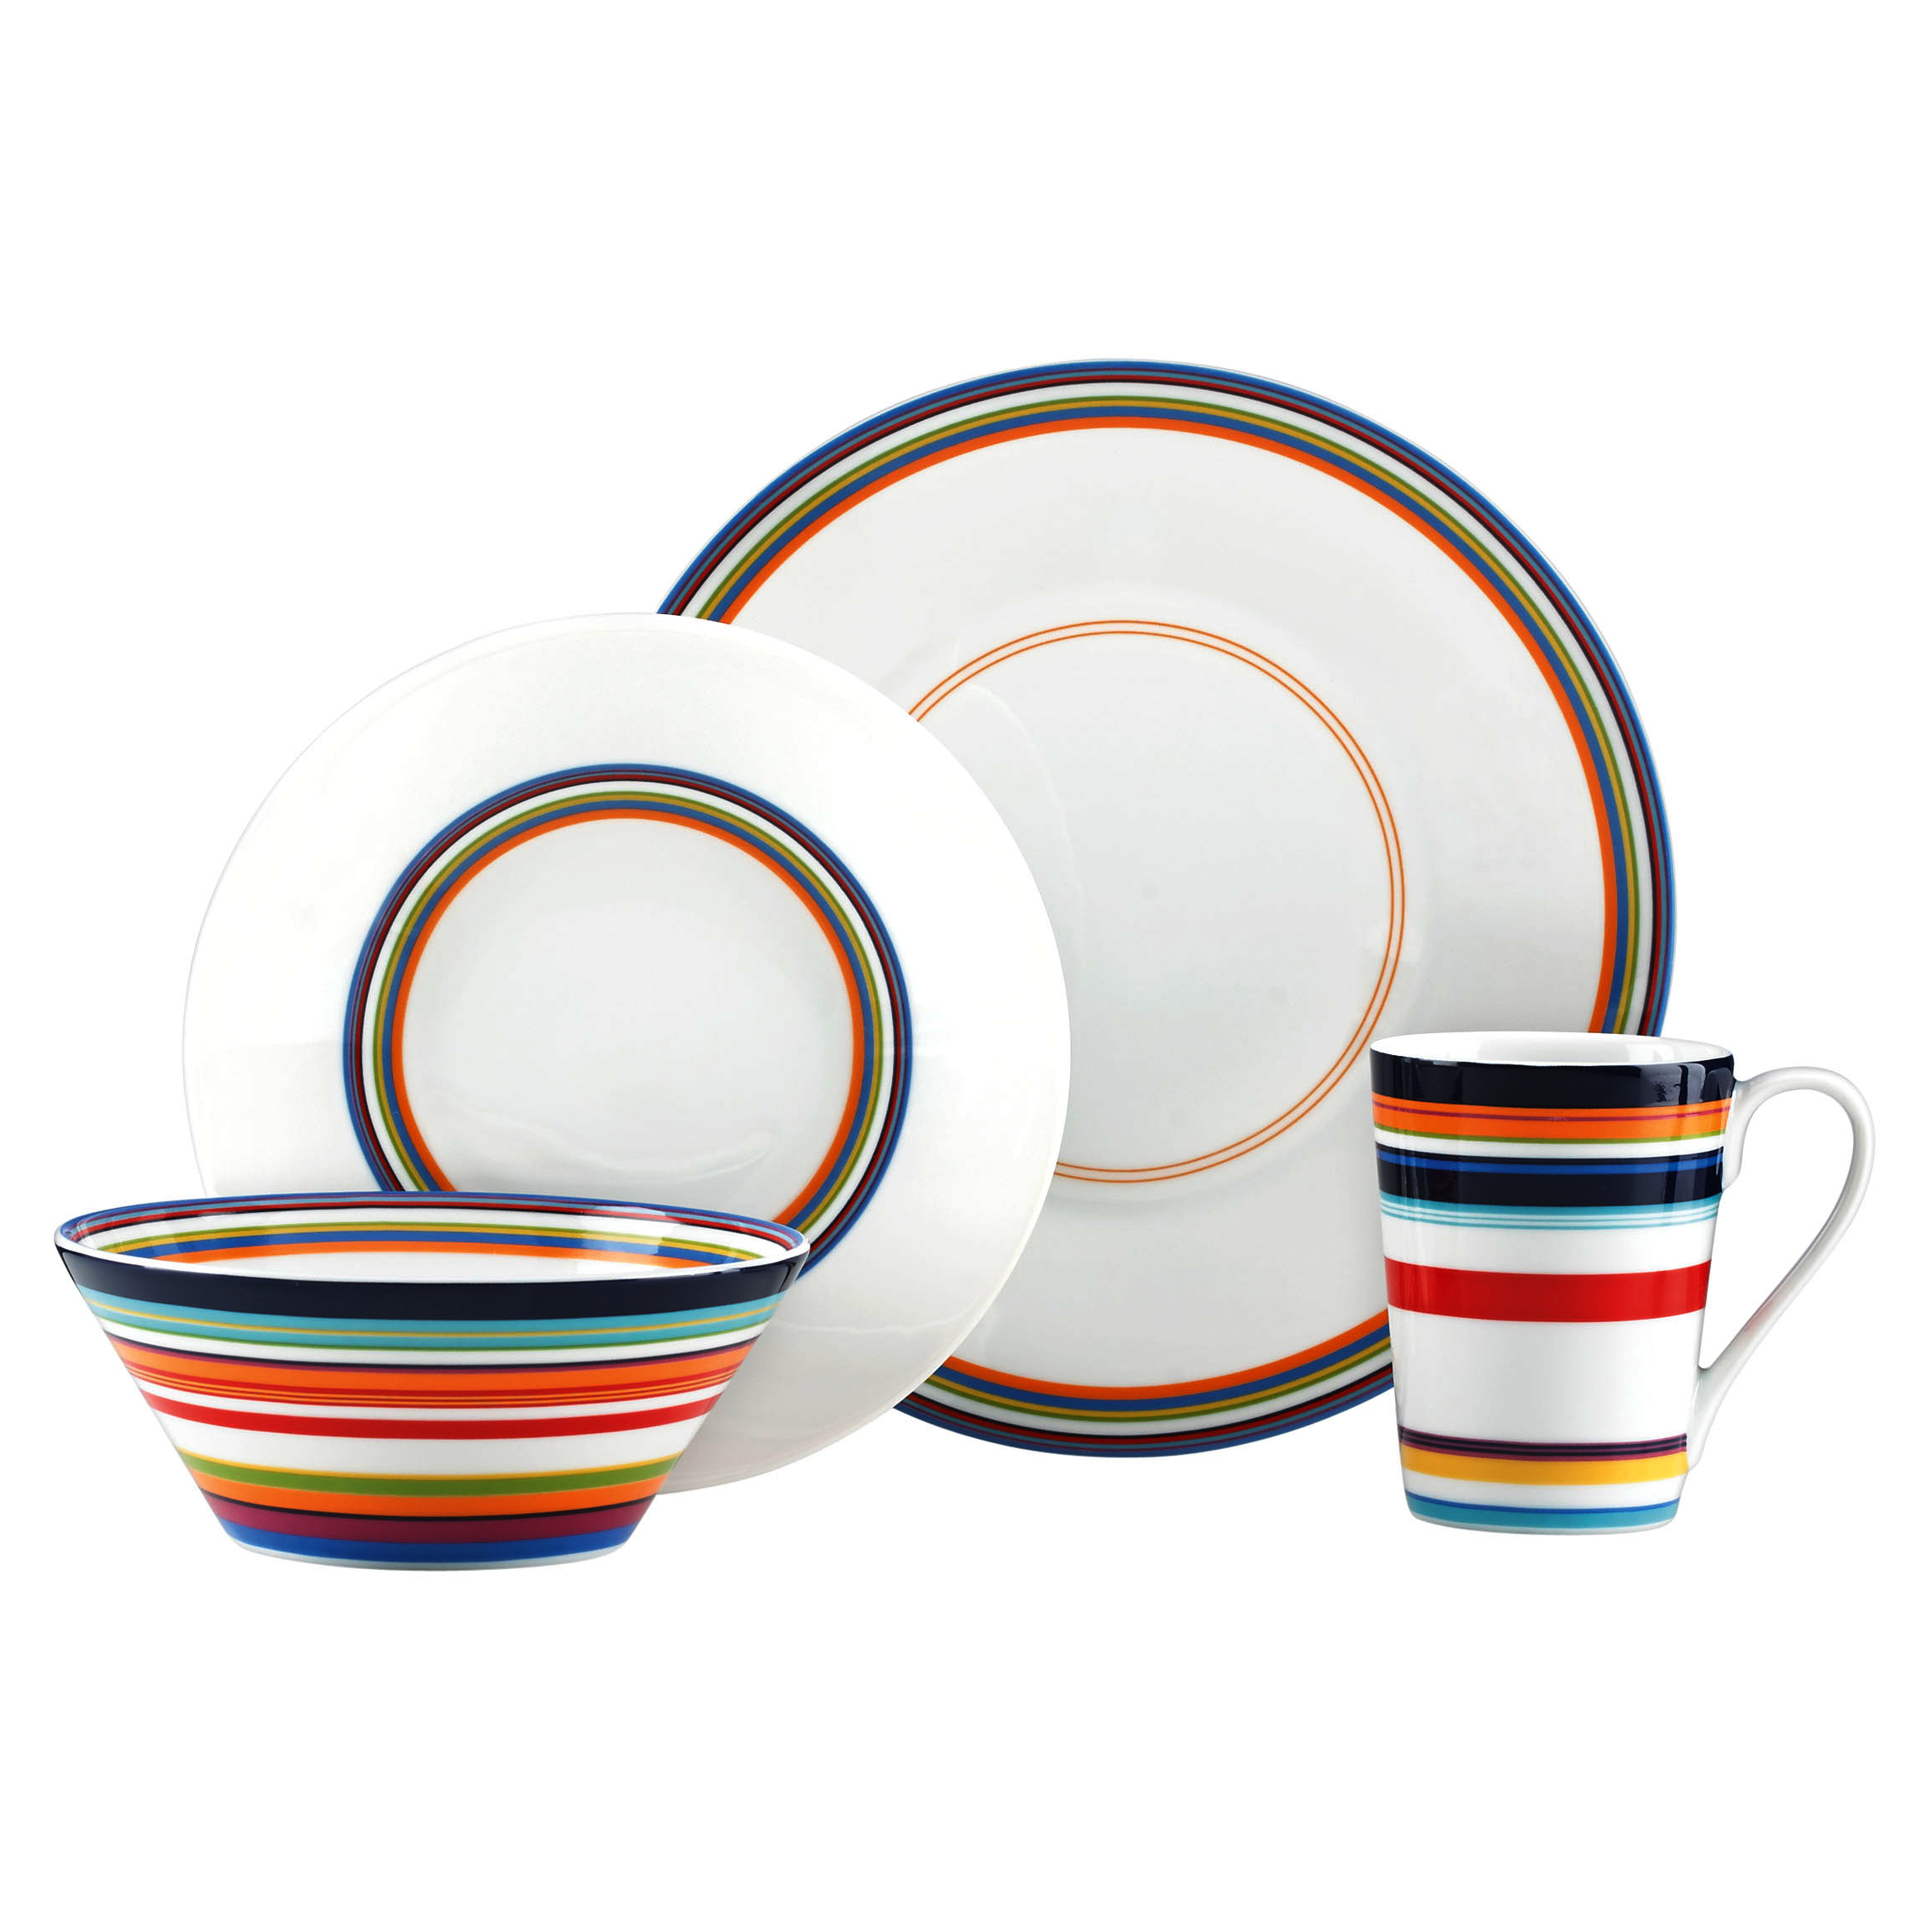 dkny urban essentials by lenox white 4 piece dinnerware place setting